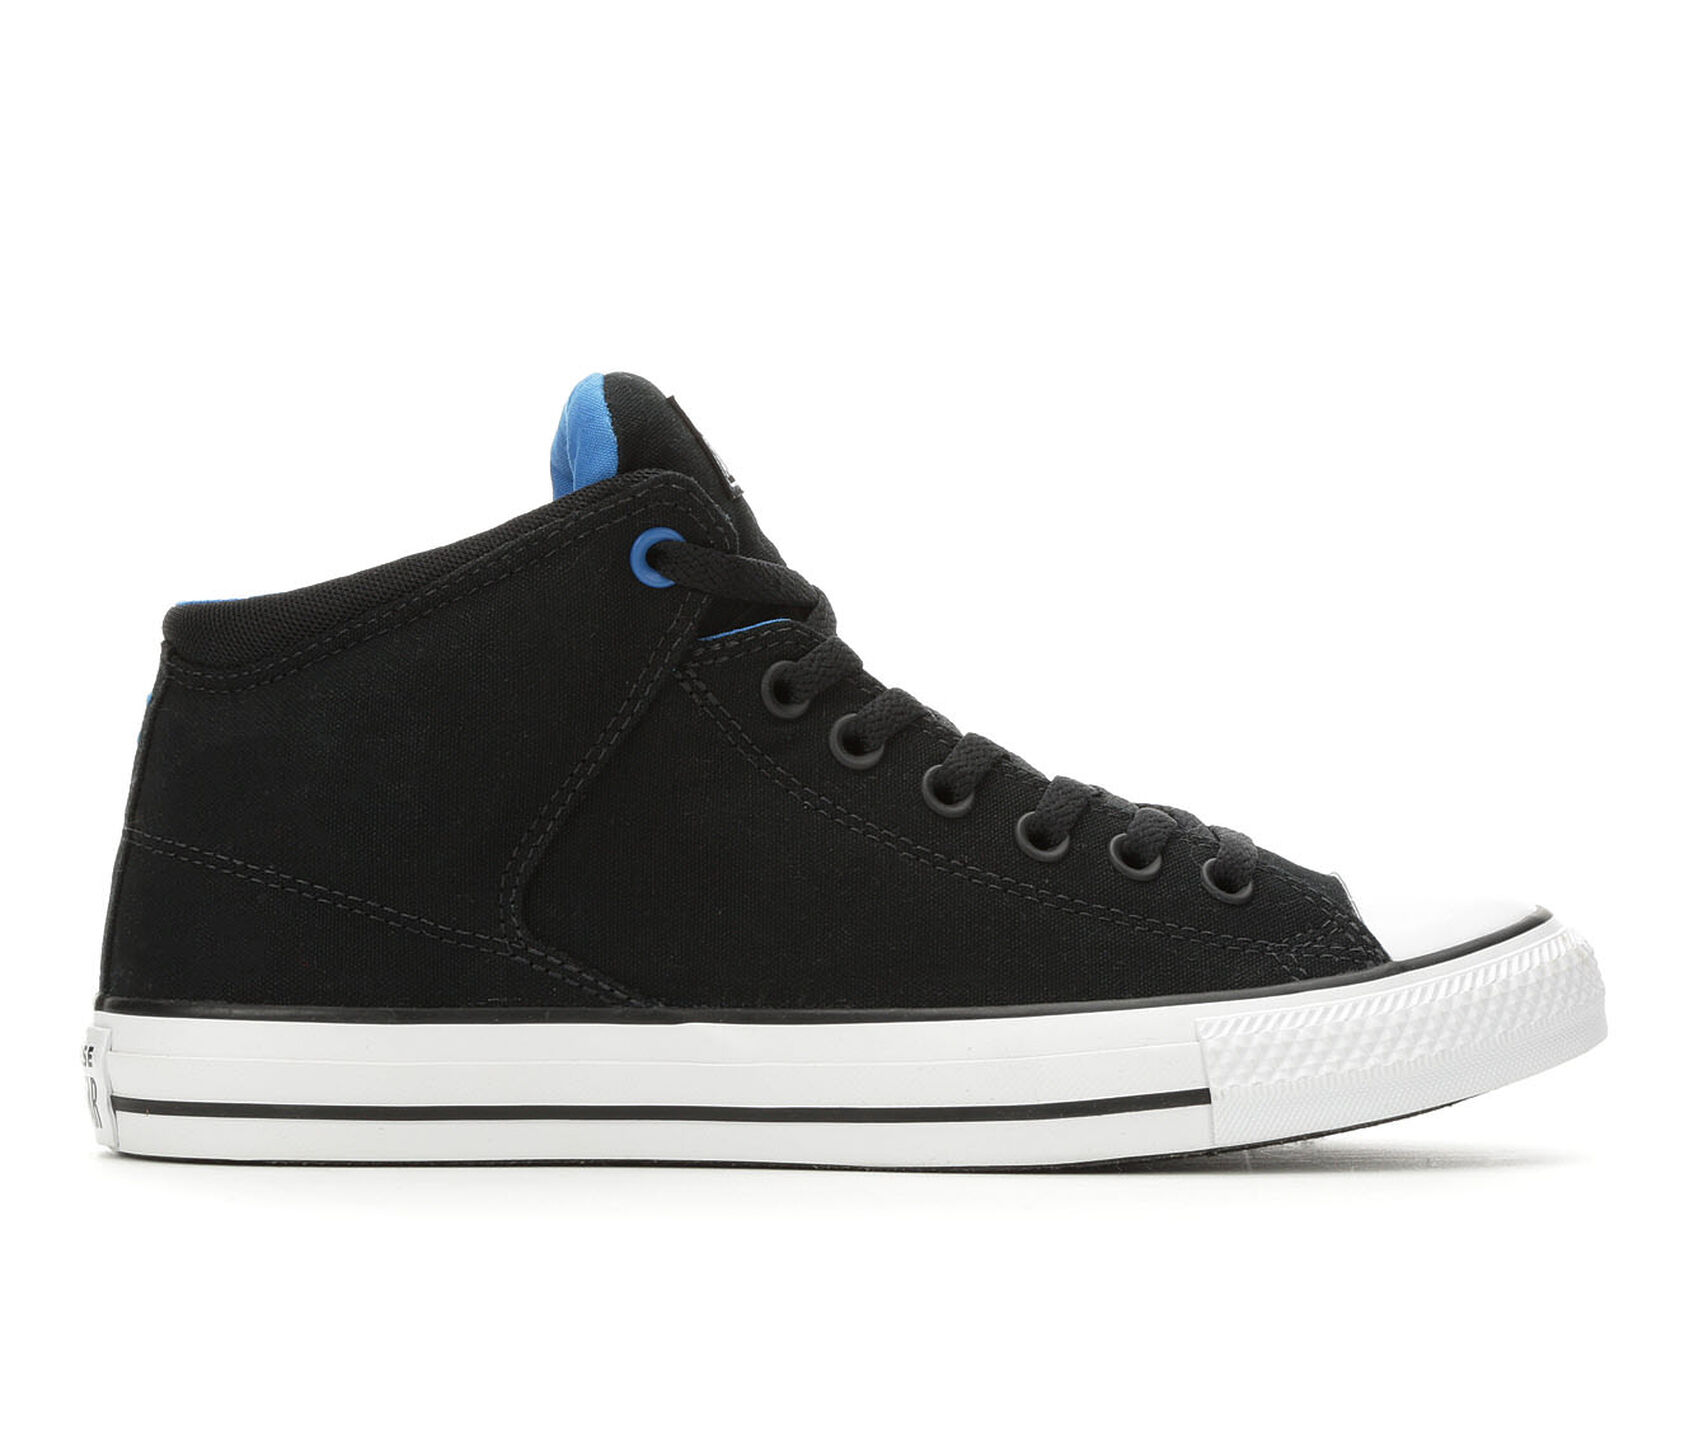 341318a9280b ... Converse Chuck Taylor All Star High Street Hi Sneakers. Previous